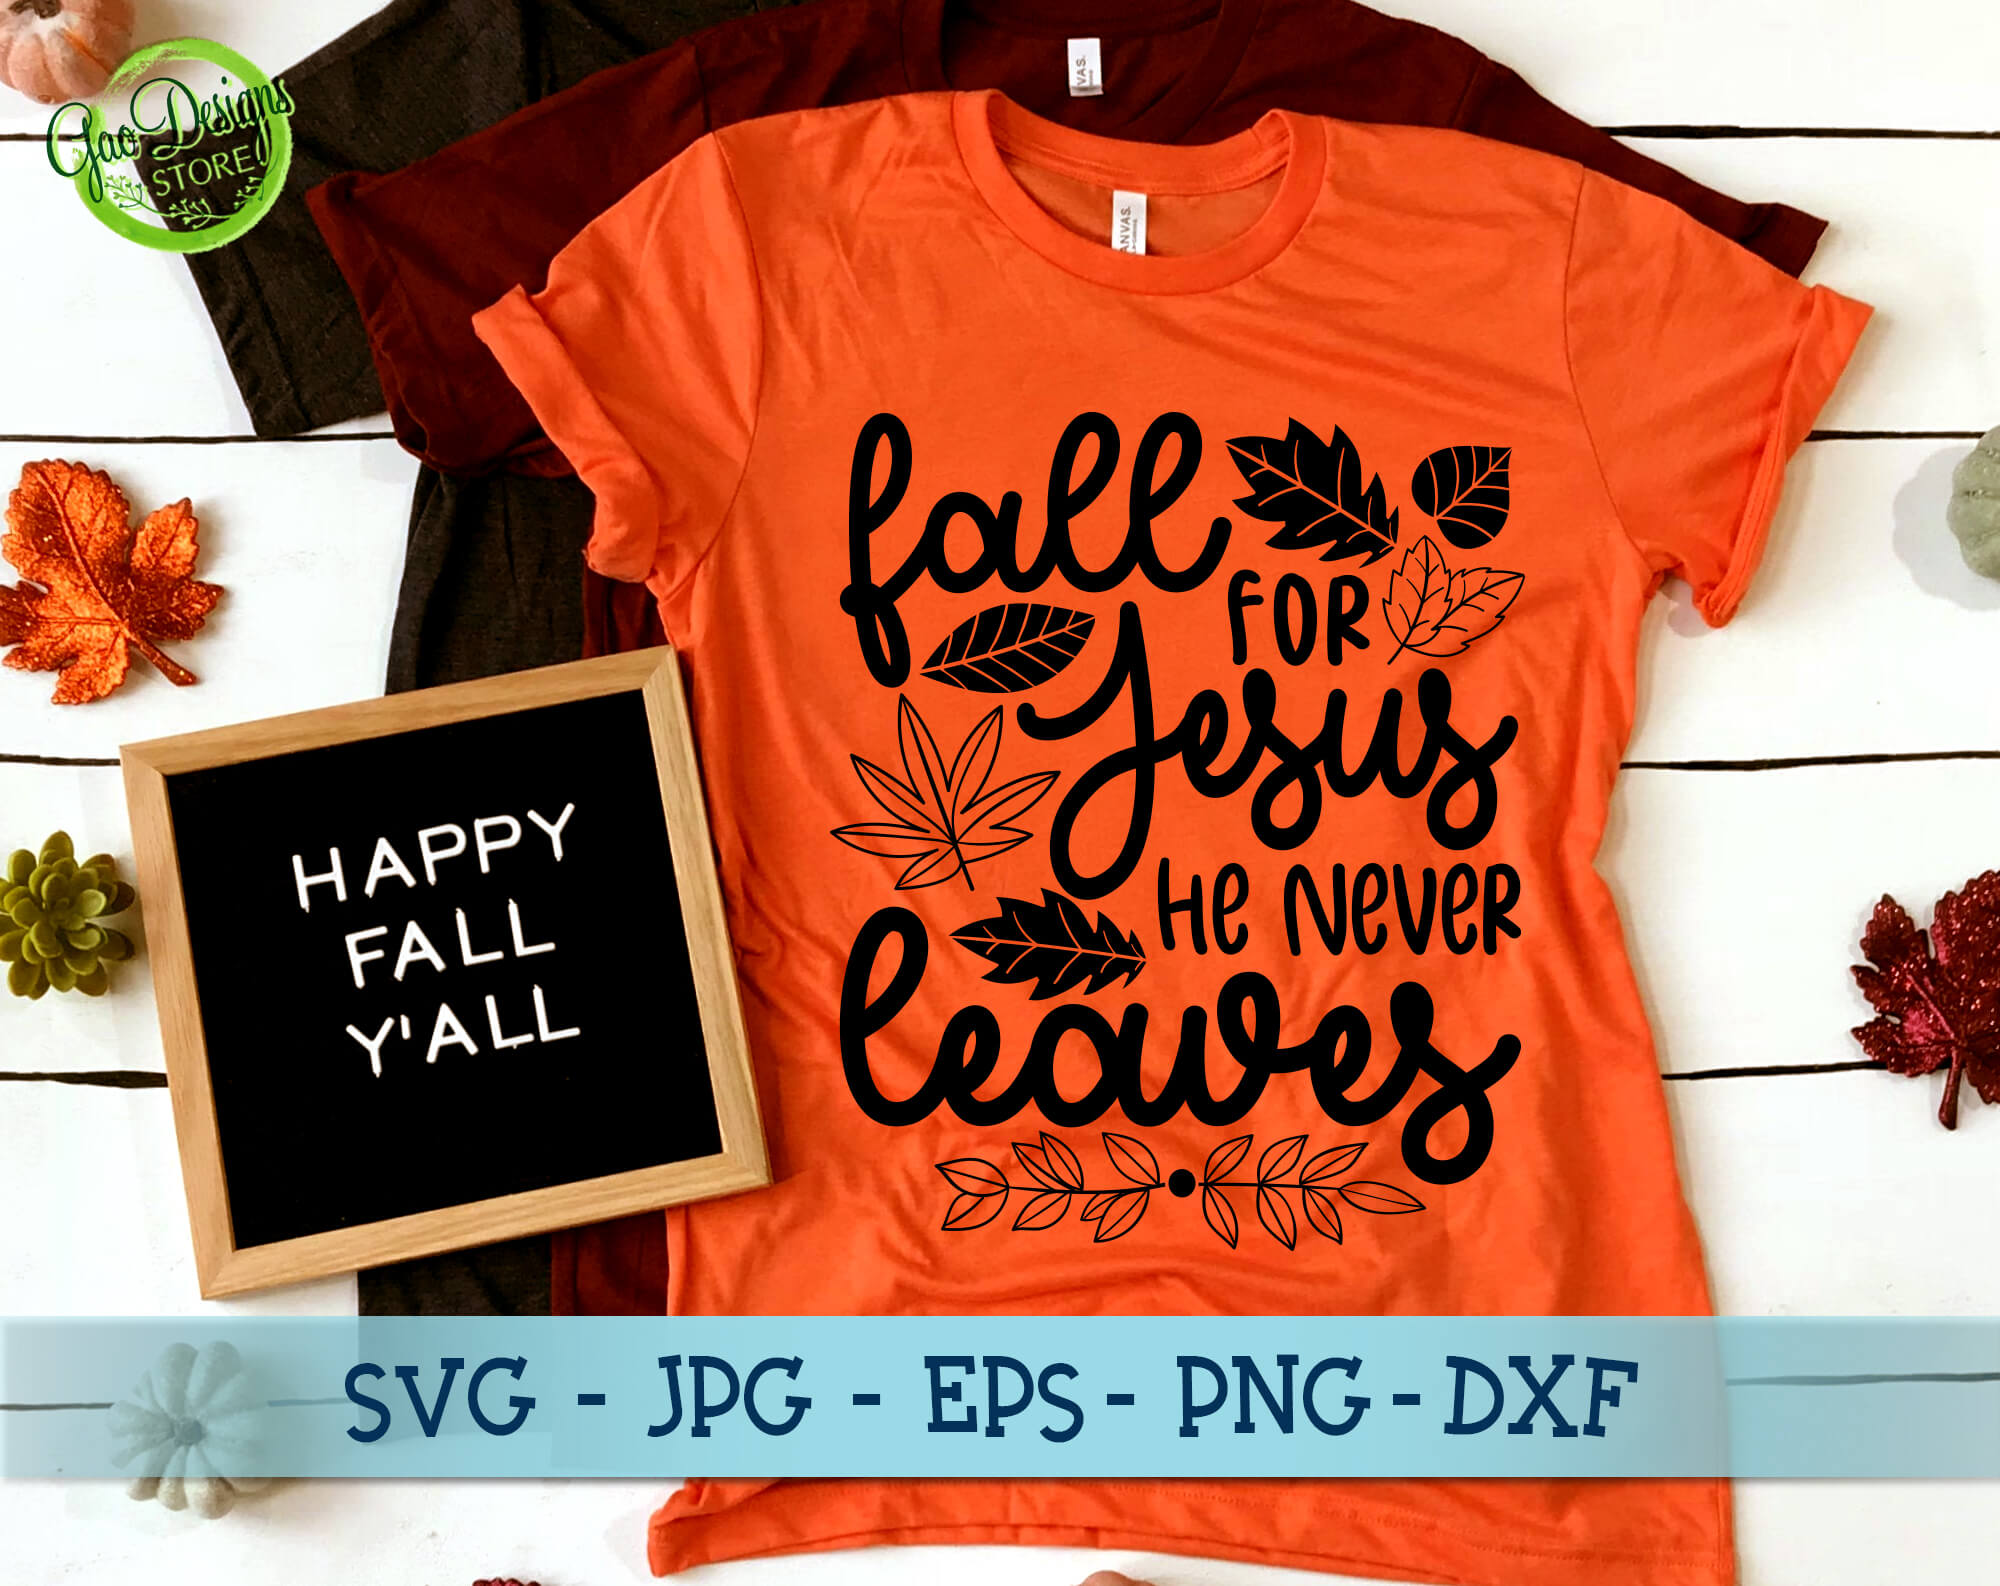 Fall For Jesus He Never Leaves Svg Fall For Jesus He Never Leaves Cut File Fall For Jesus Svg Fall For Jesus Cut File Gaodesigns Store Download and upload svg images with cc0 public domain license. fall for jesus he never leaves svg fall for jesus he never leaves cut file fall for jesus svg fall for jesus cut file